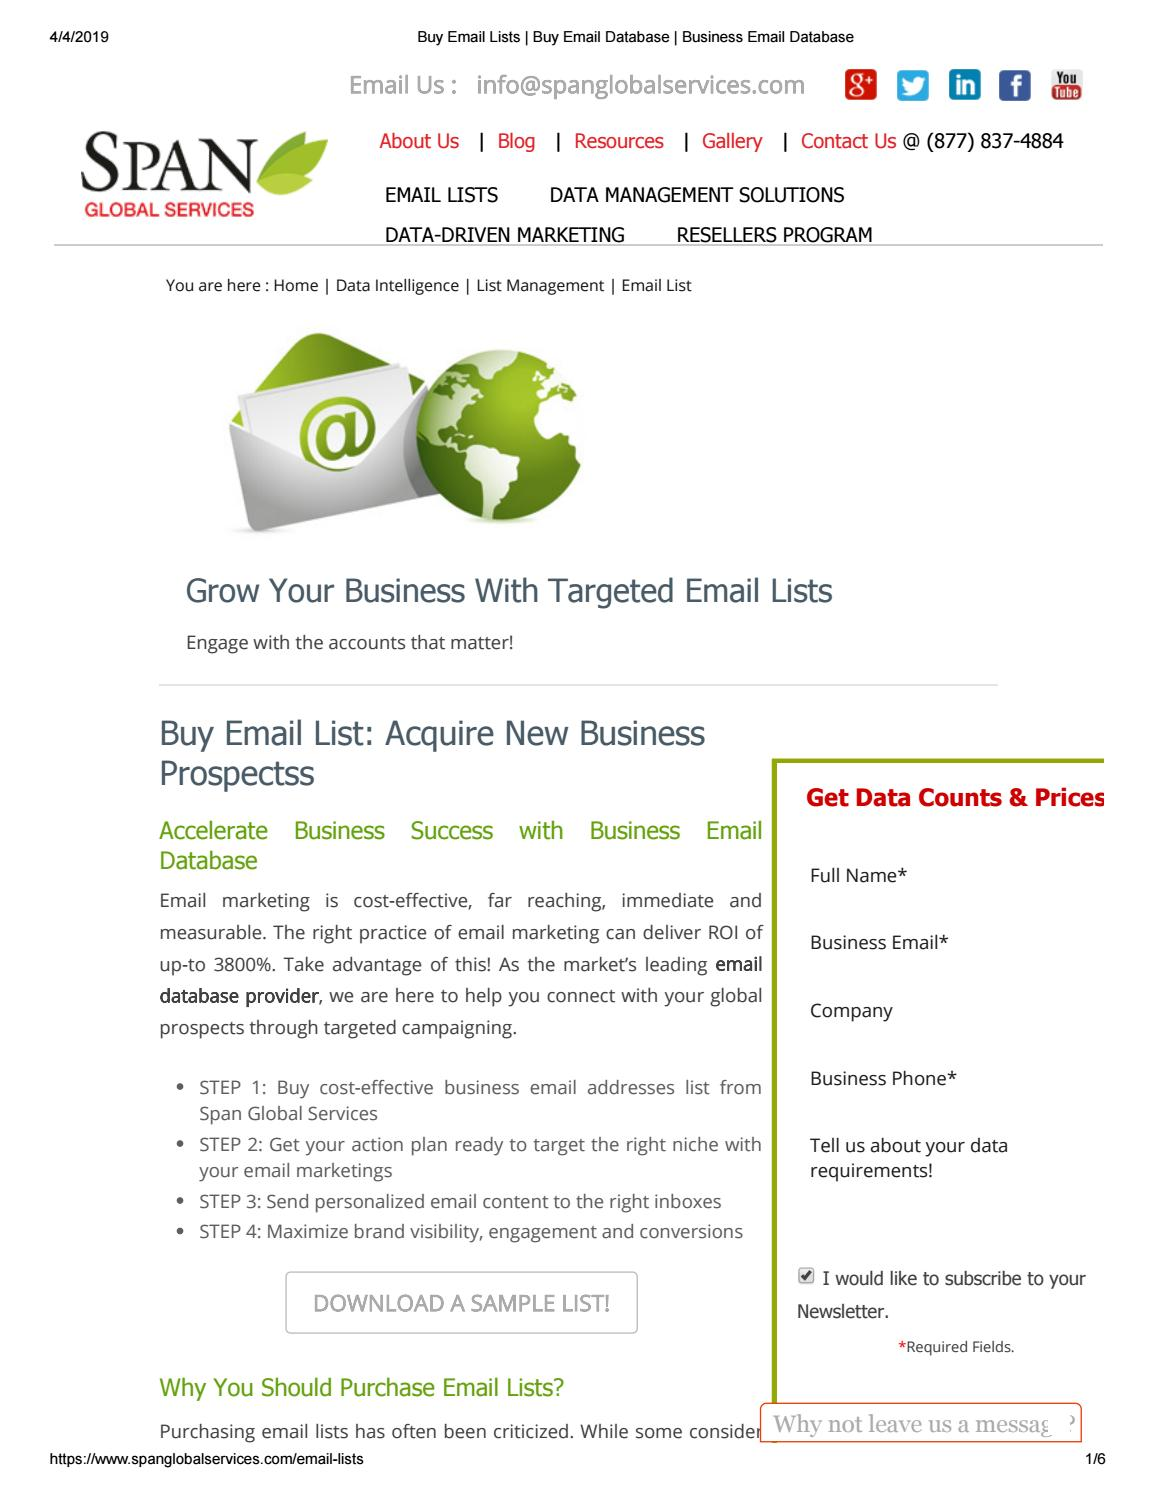 Purchase Email Lists - Span Global Services by dianejack112